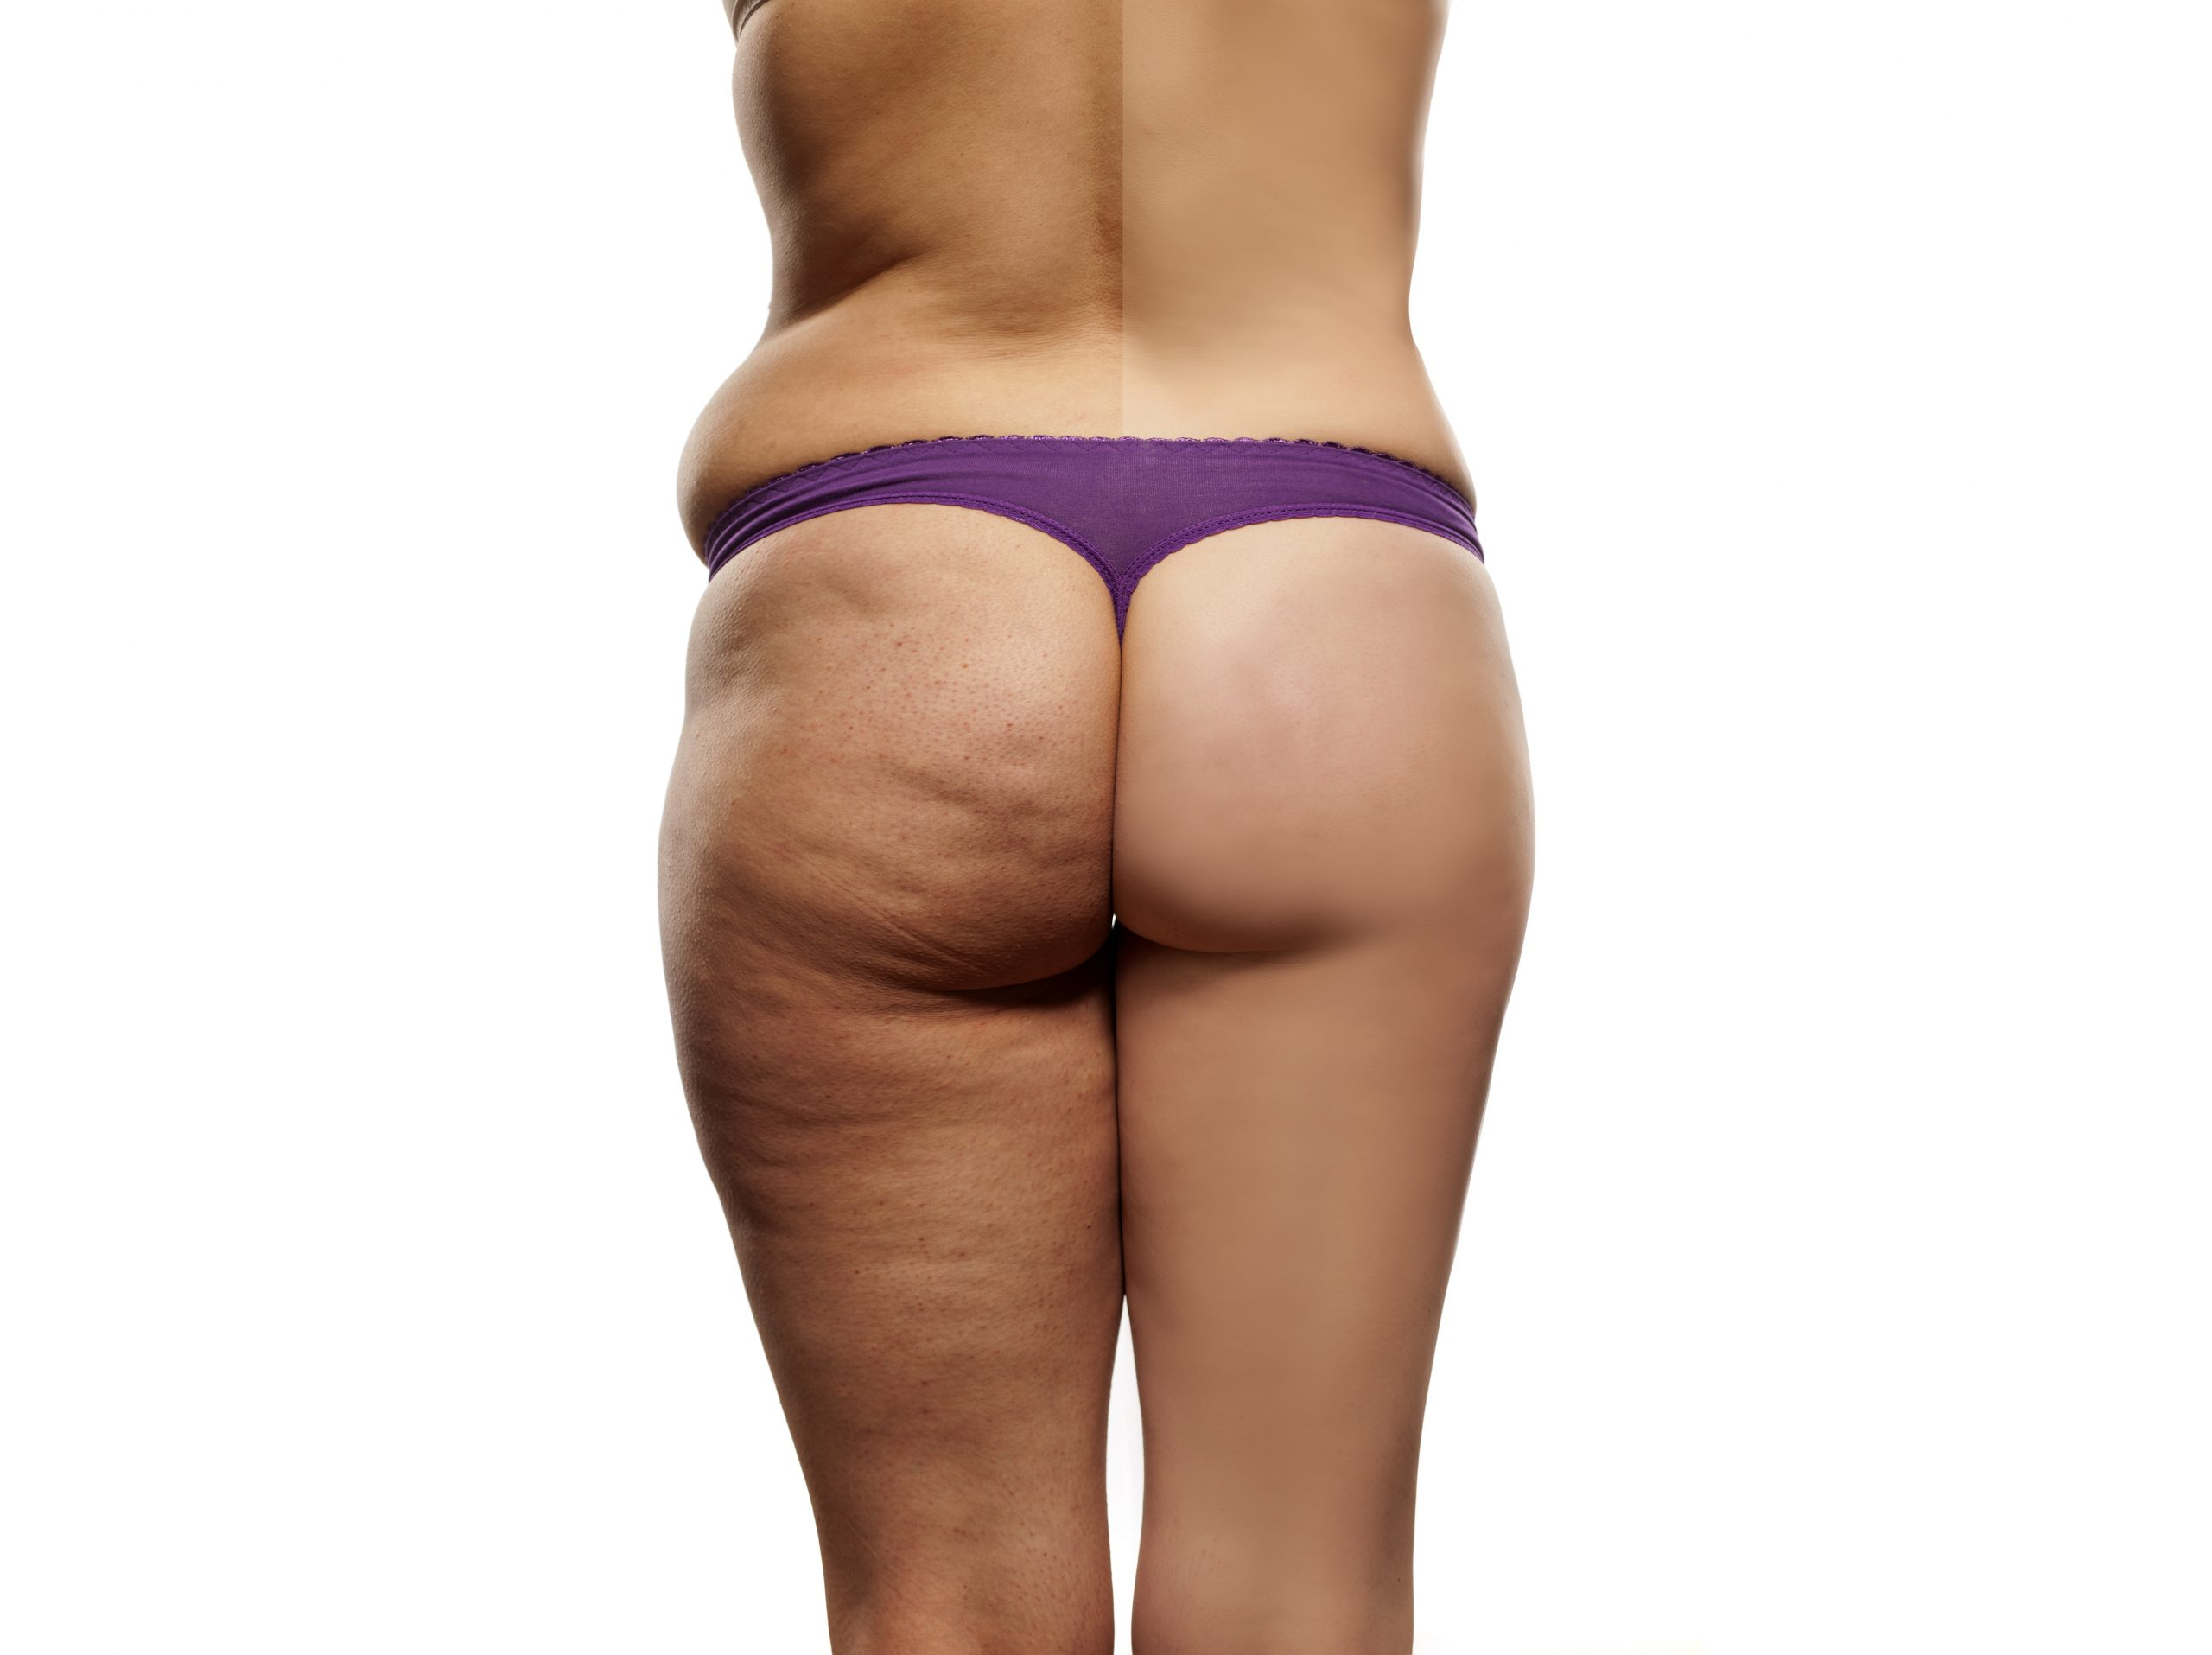 Freezing fat away sounds too good to be true, 5 ways to know if CoolSculpting is right for you!